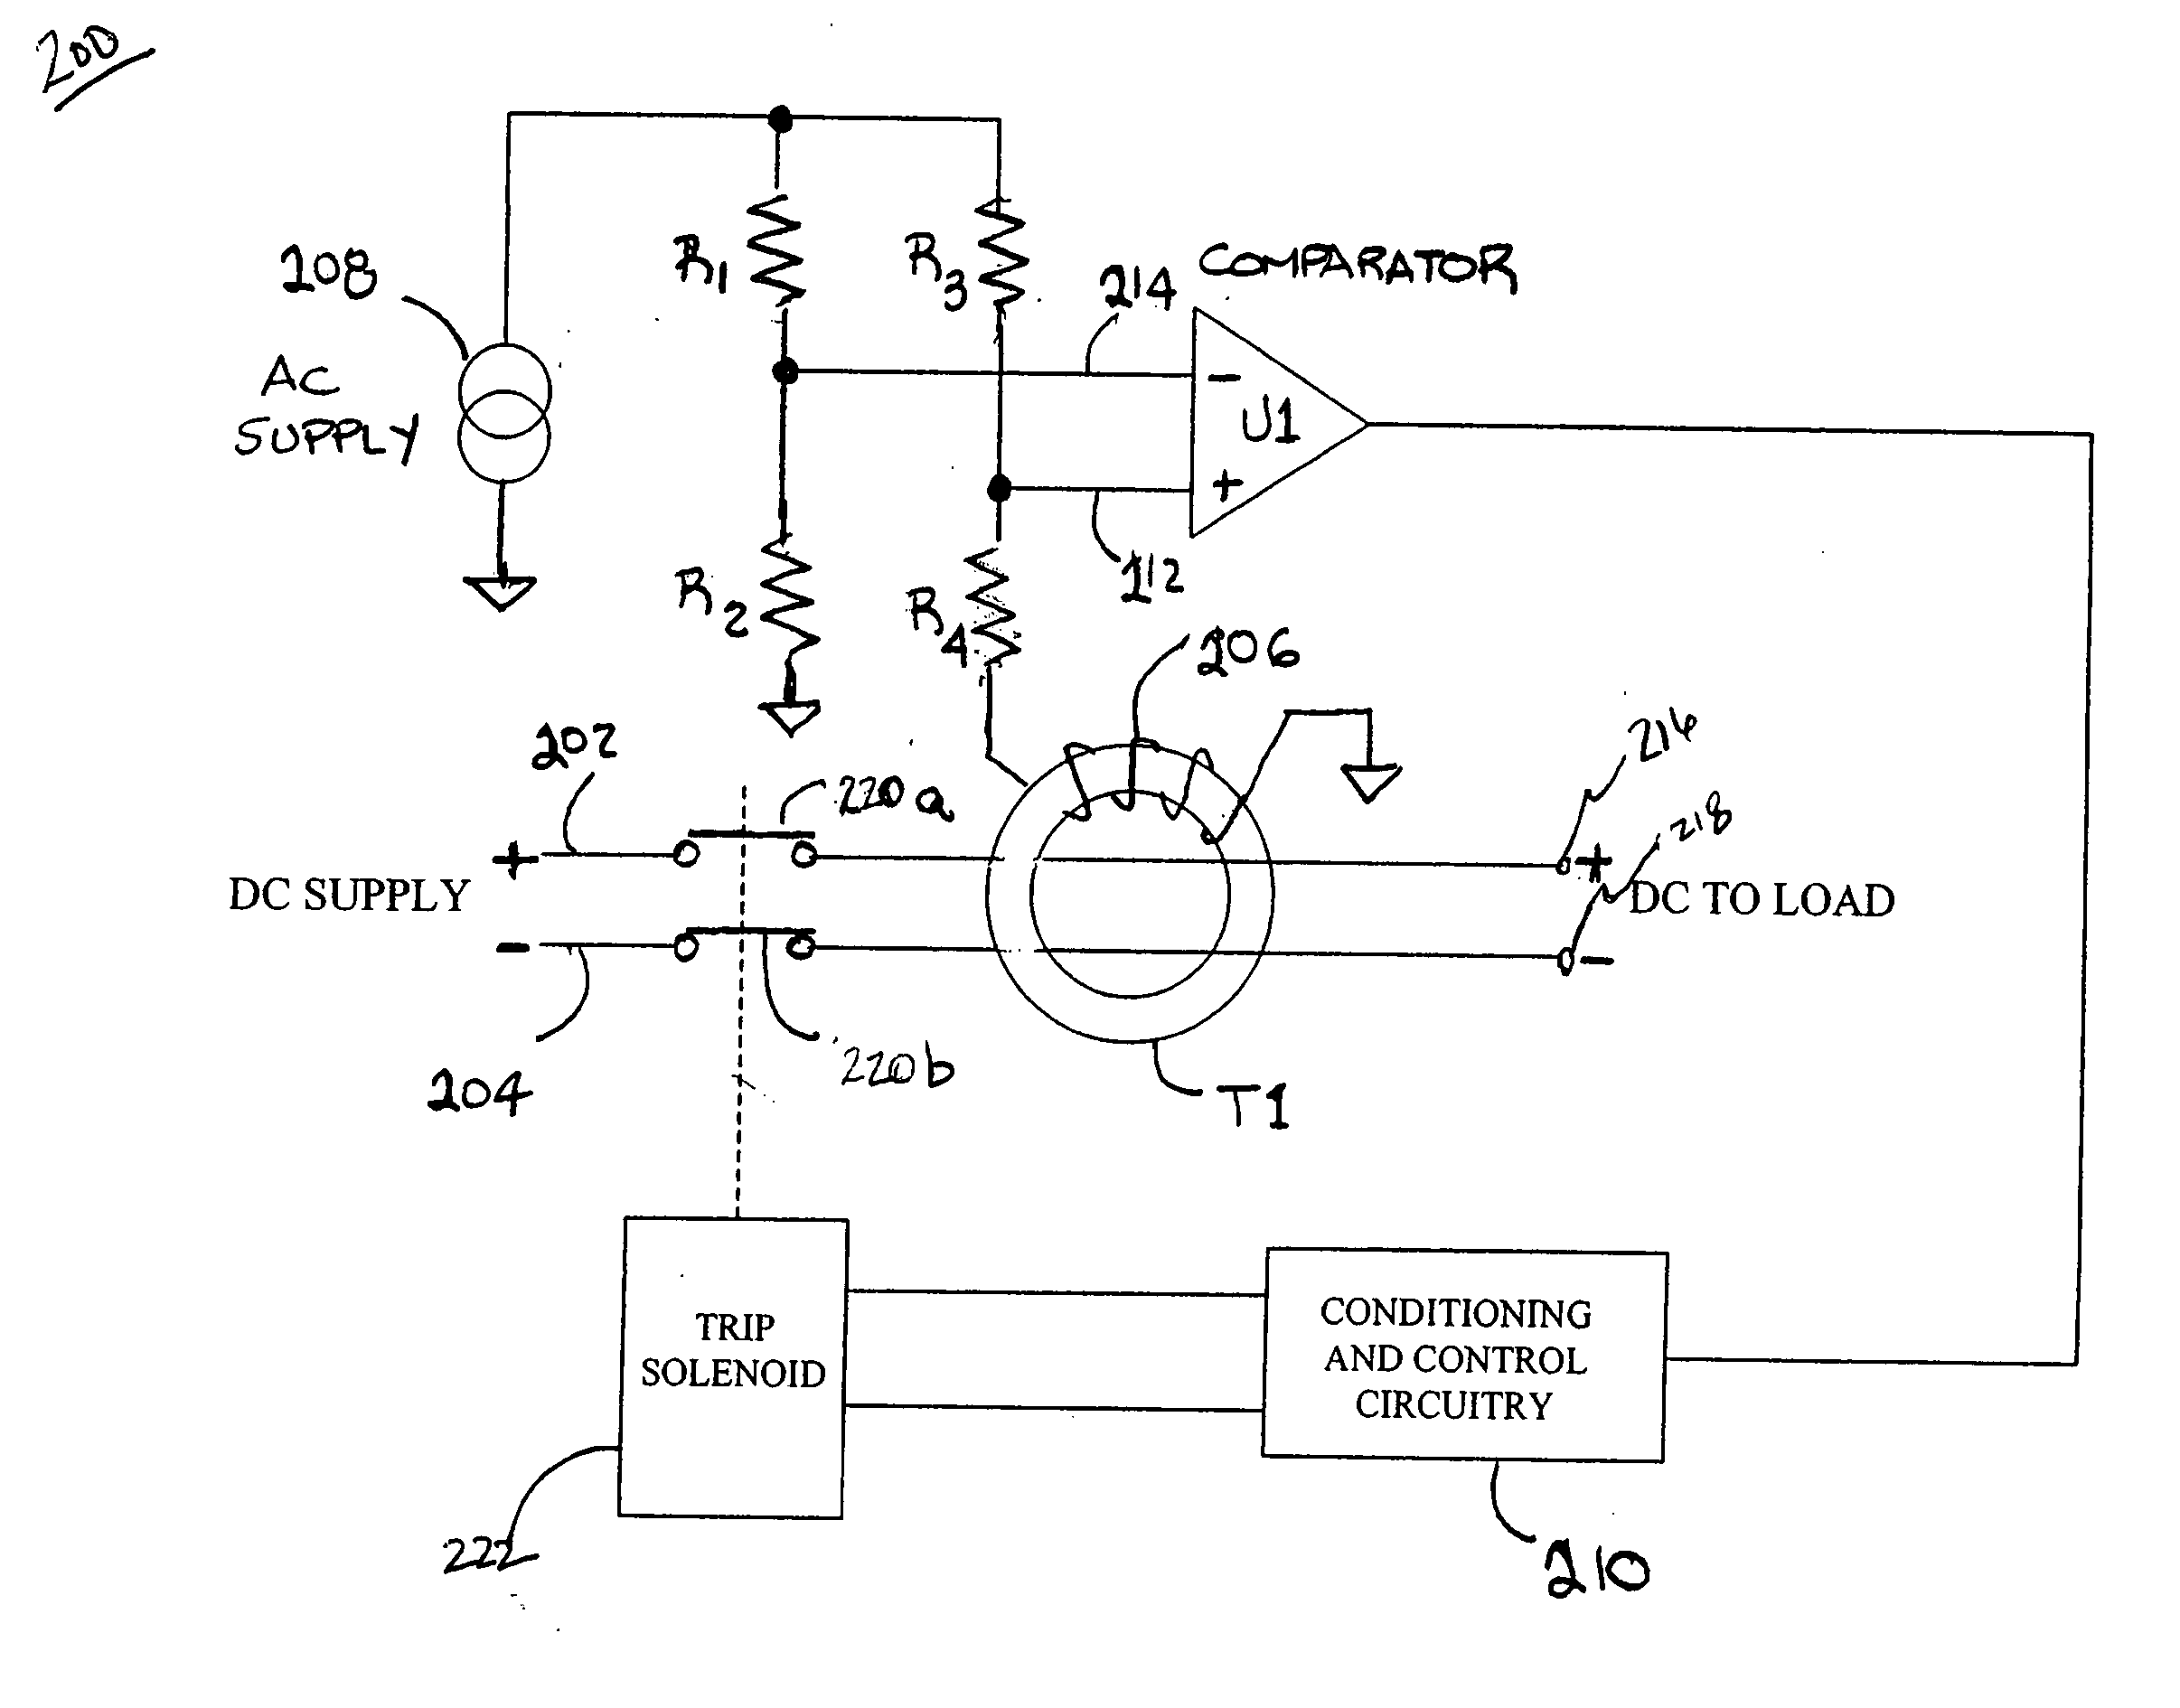 electrical ground fault indicator wiring diagram with Ground Fault Indicator Wiring Diagram on Electrical Ground Fault Indicator Wiring Diagram in addition Cargo Mate Wiring Diagram furthermore Live Wire Detector Circuit Diagram further Cam Position Sensor and Sync Pulse Stator as well 09groundfaults.